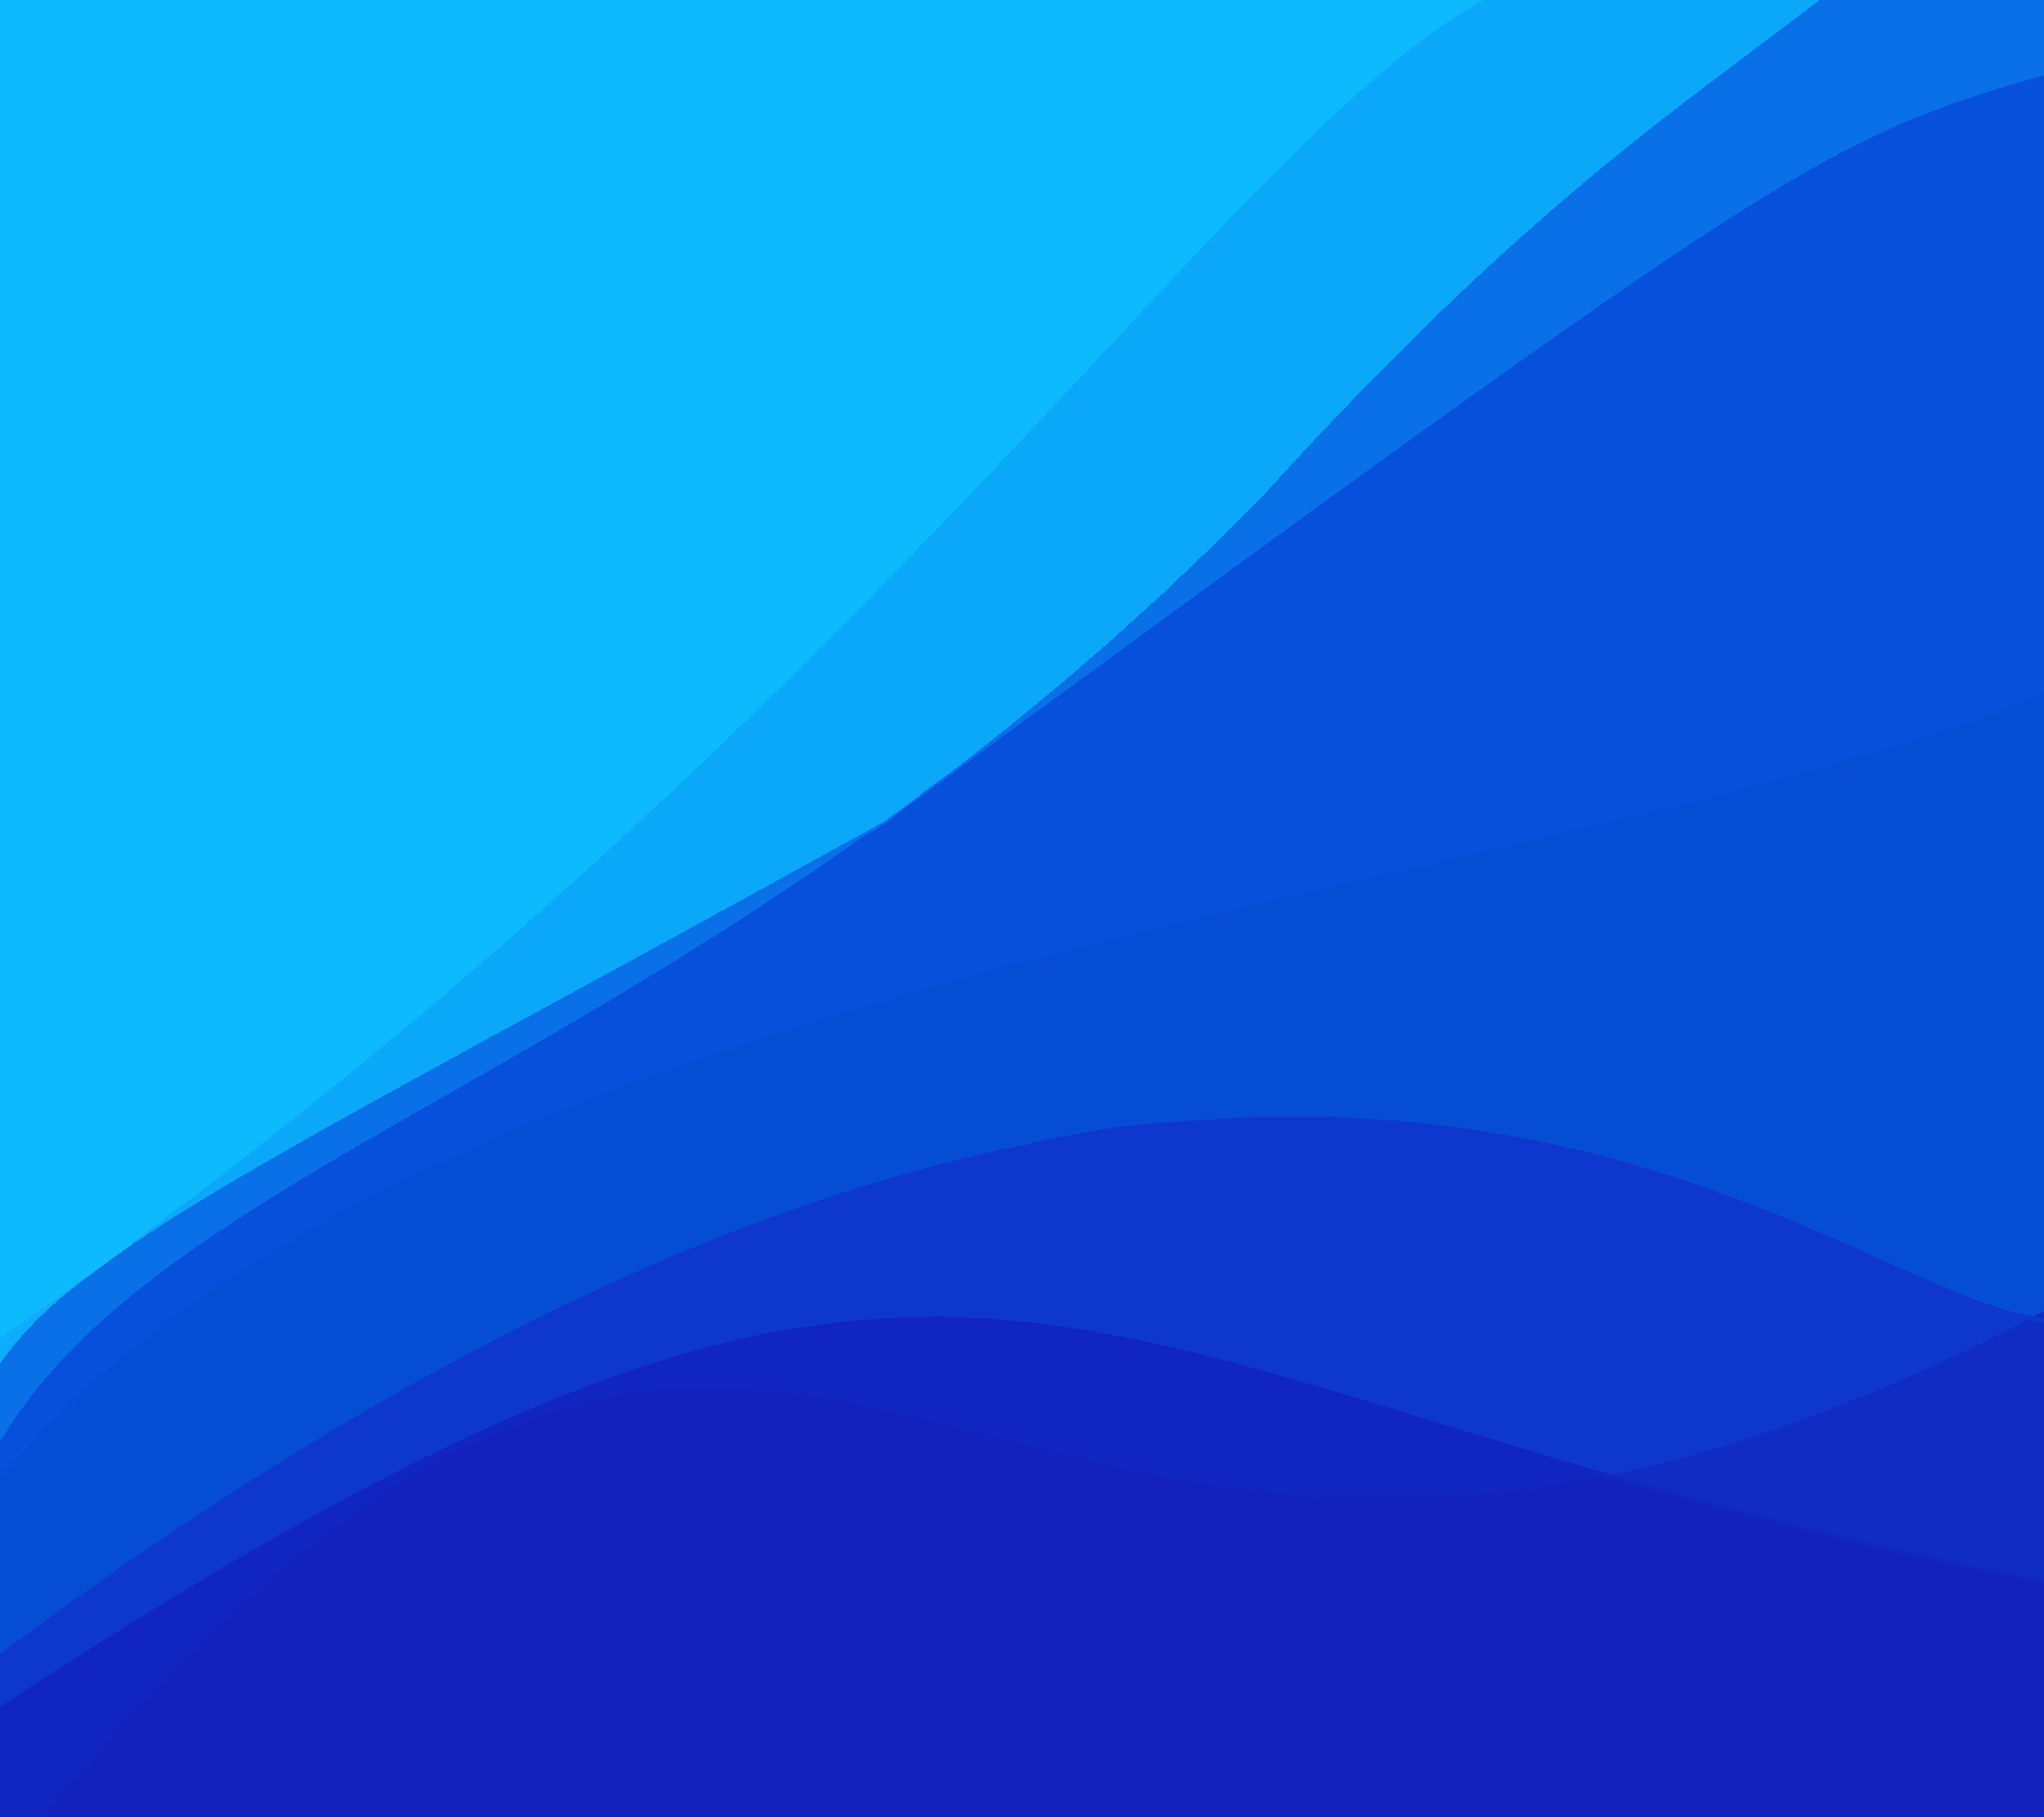 Love Wallpaper For Xperia M : Sony Xperia M4 Aqua Stock Wallpaper by sasomkd on DeviantArt